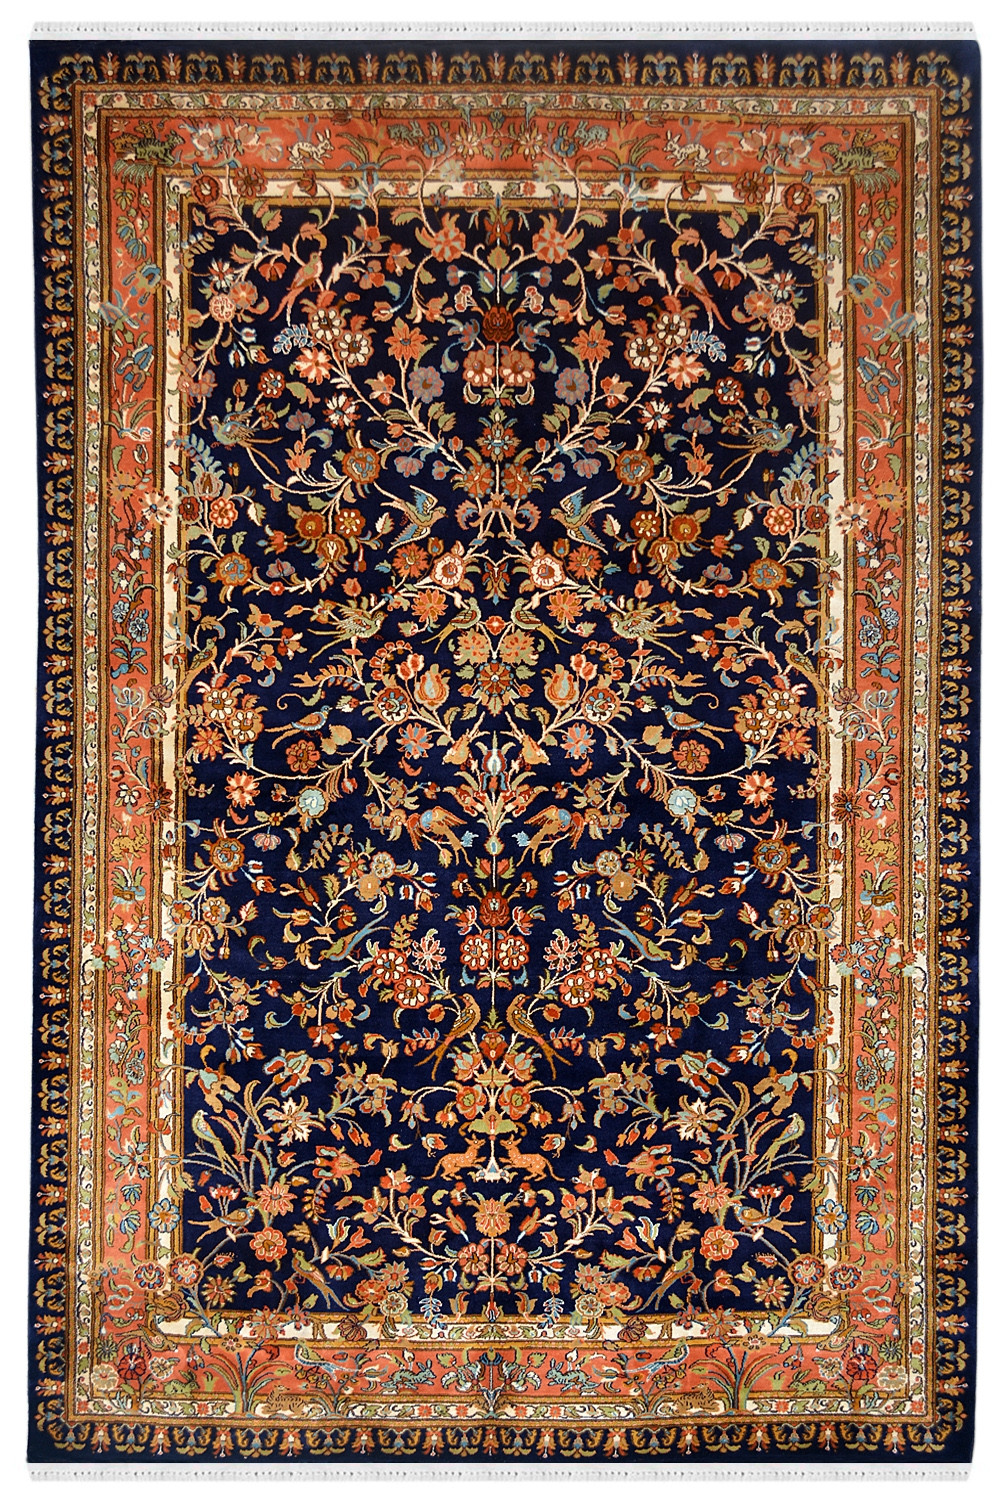 Buy Beautiful Floral Garden Handmade Silk Rug at Rugs and